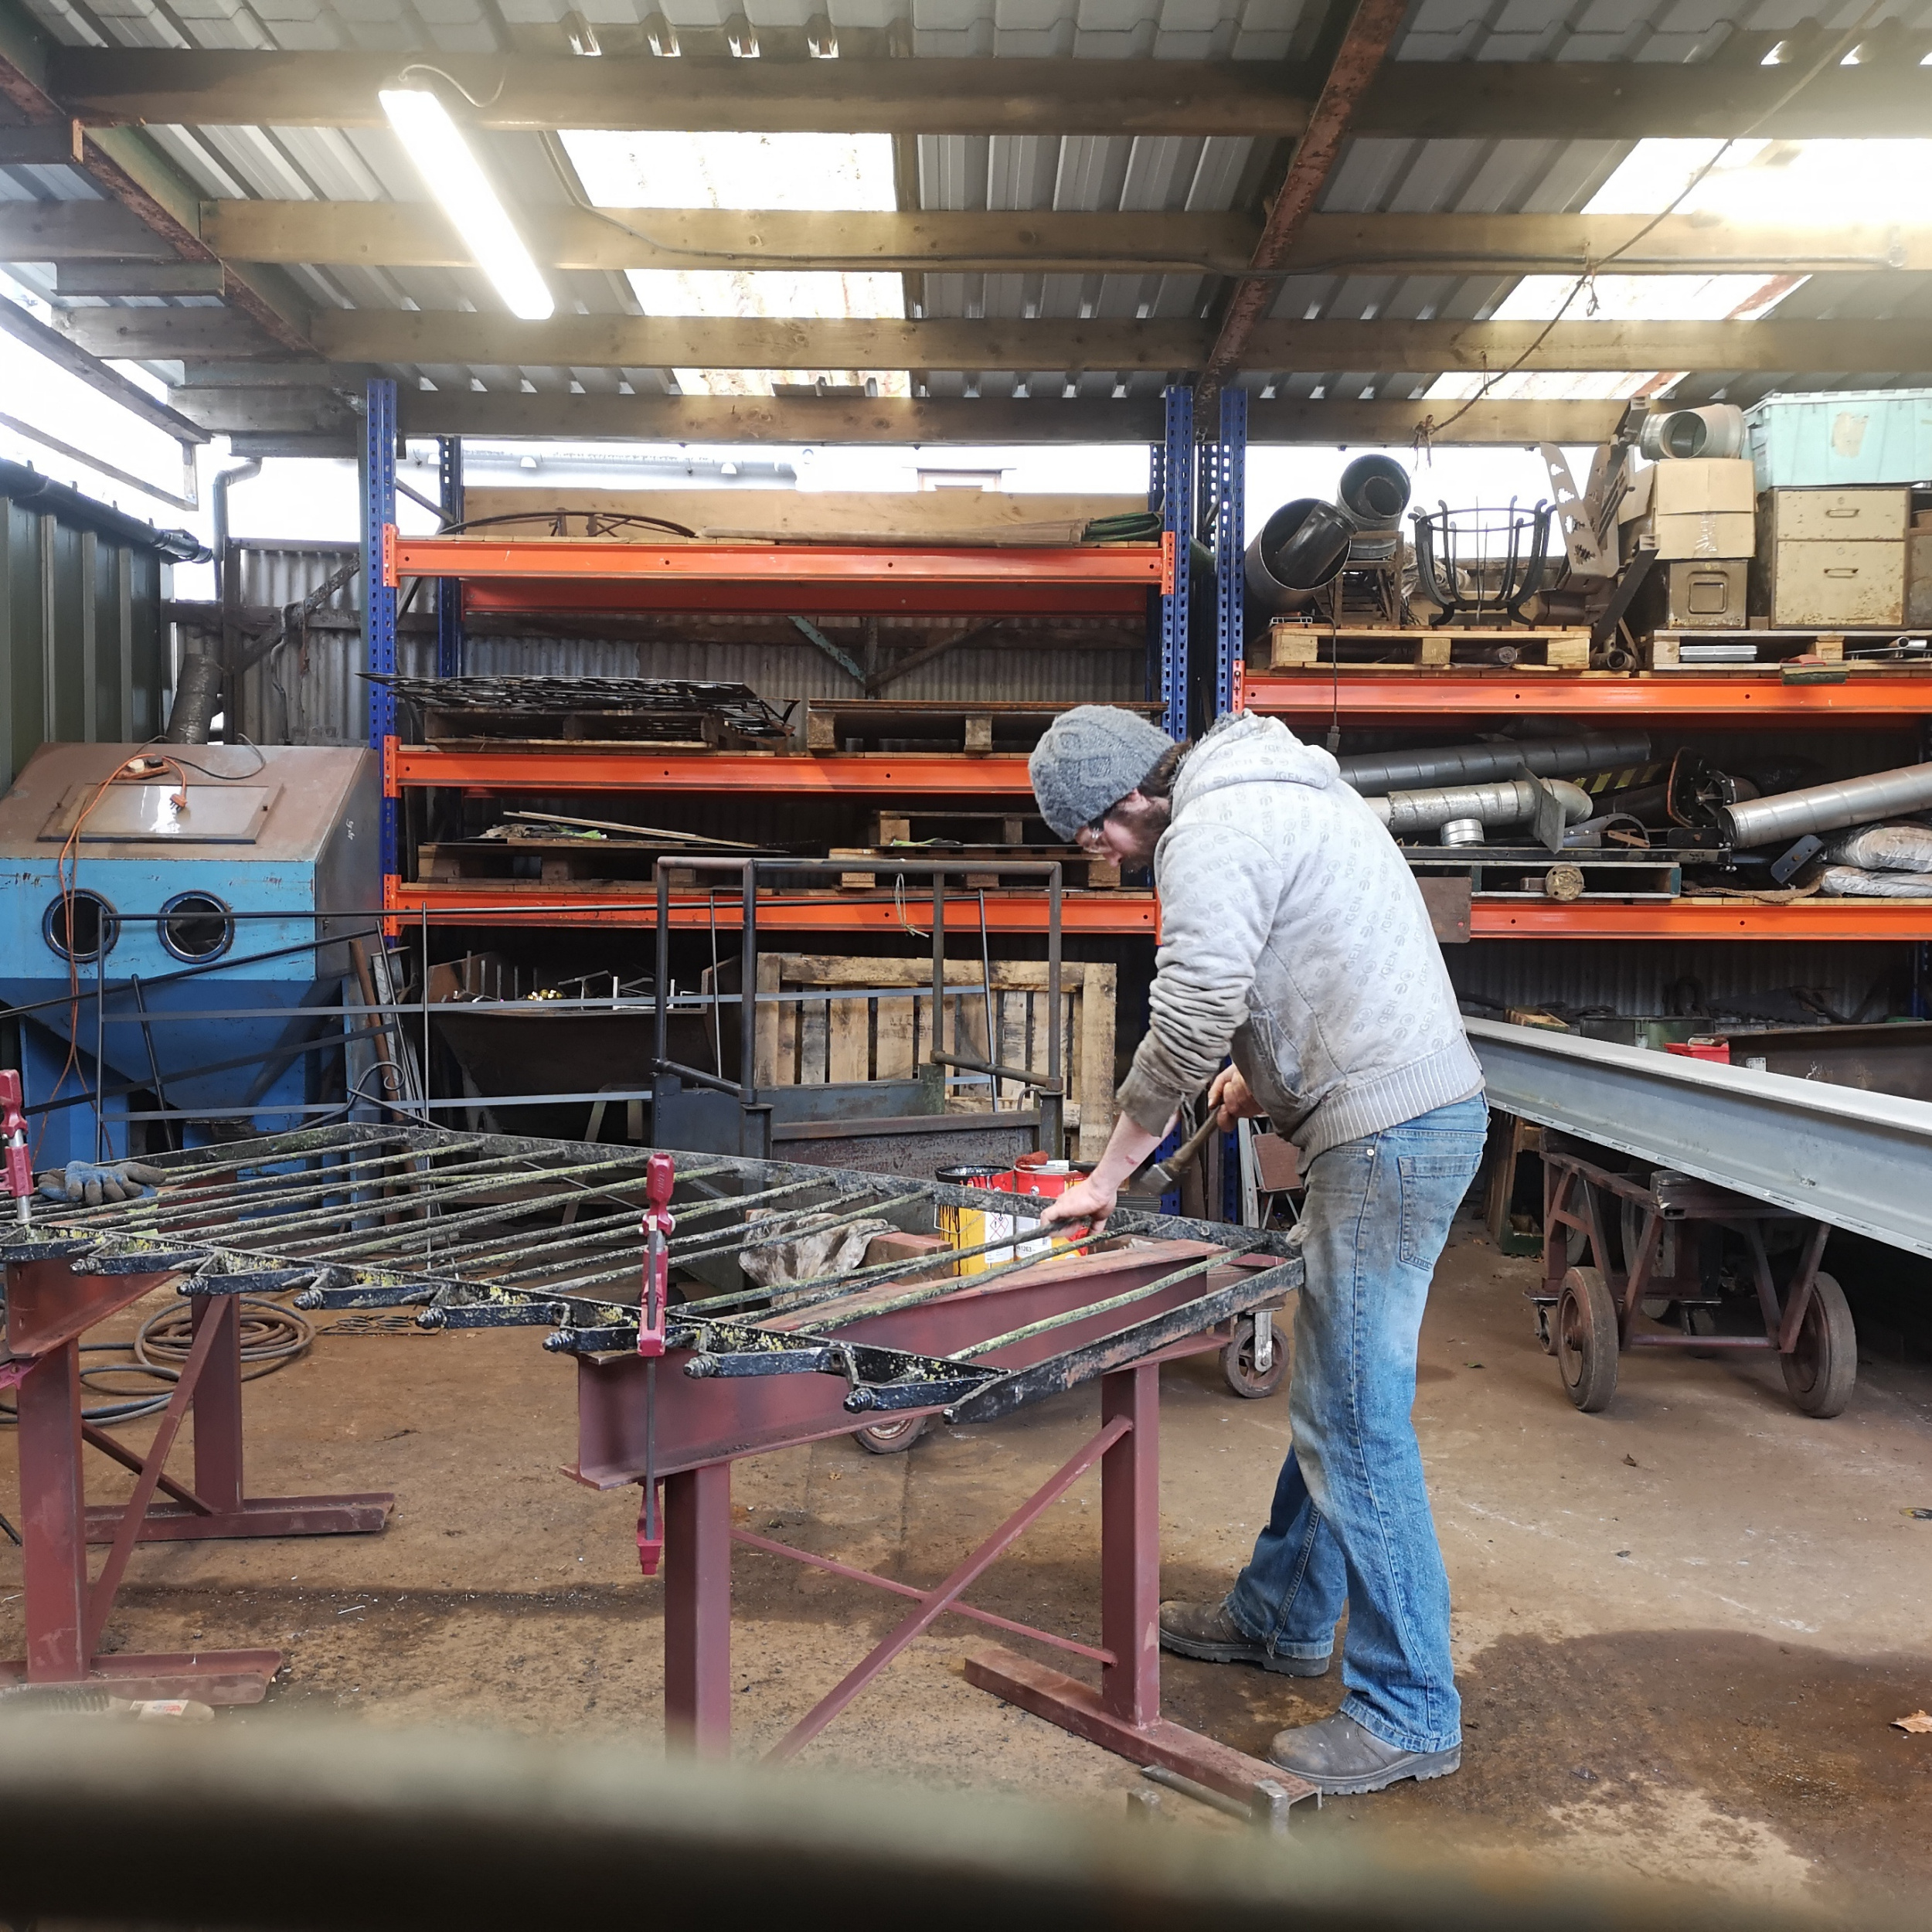 Restoring a traditional set of wrought iron railings